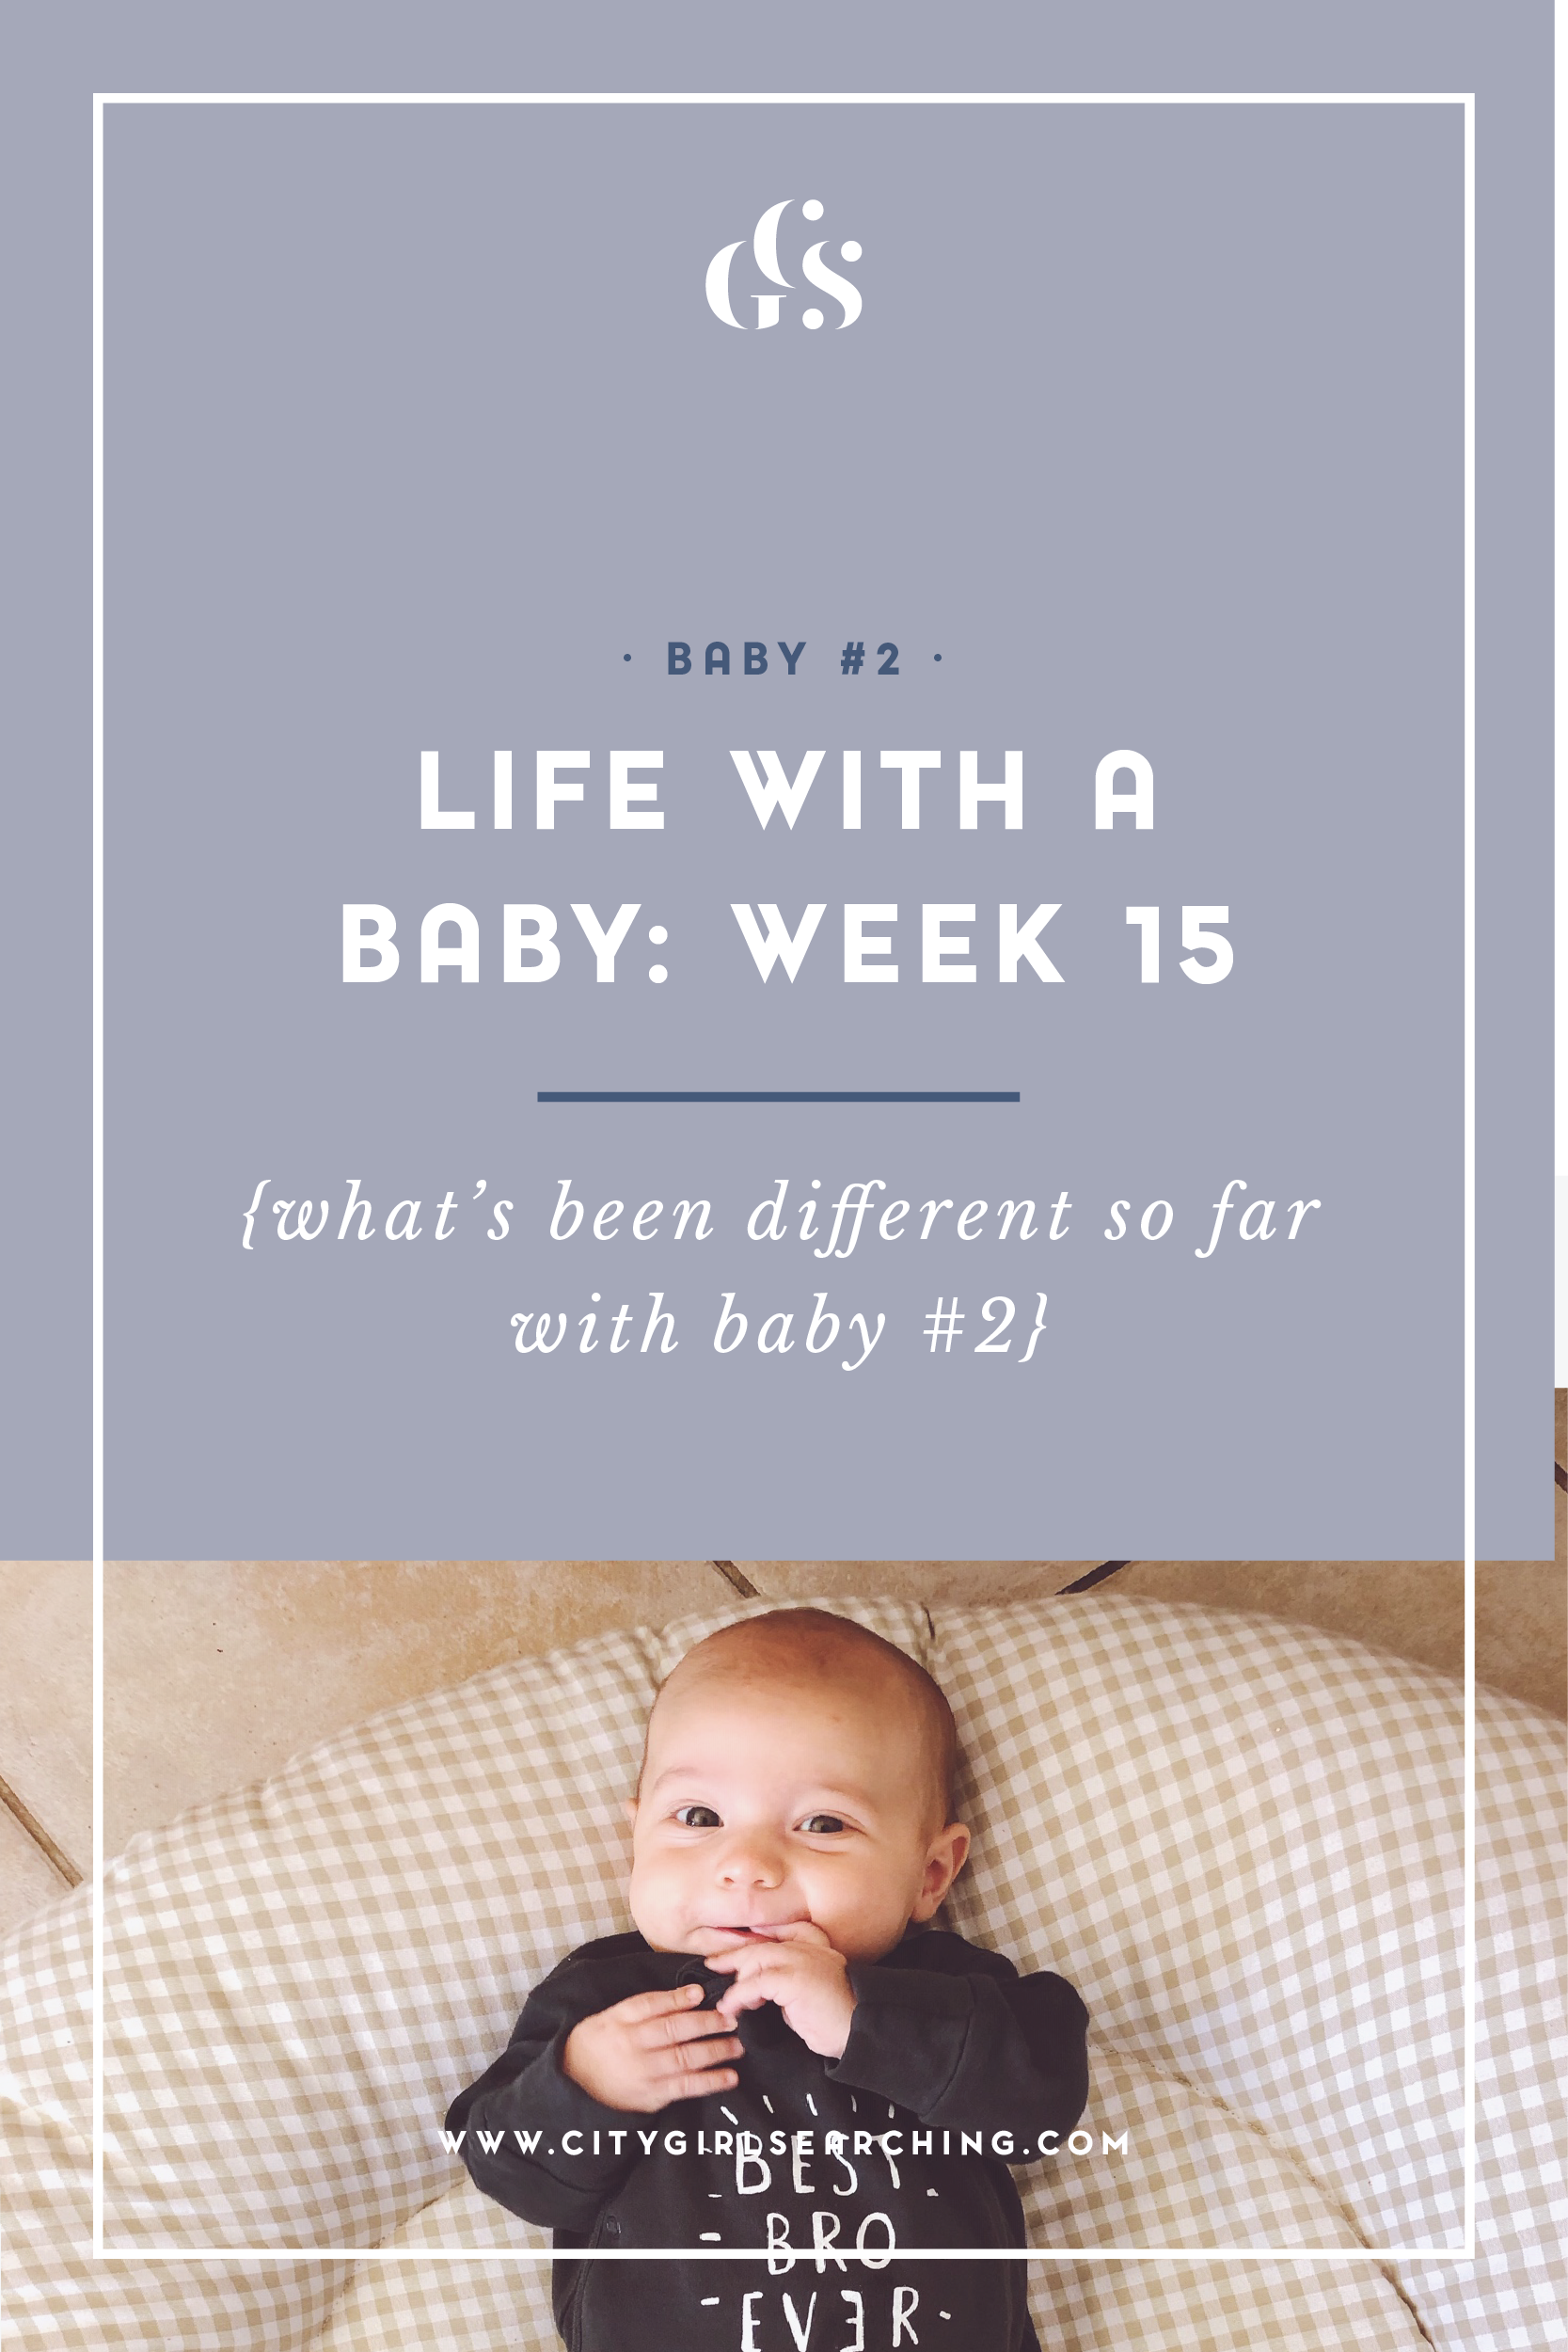 Life With A Baby 15 weeks - What's been different so far with baby #2-01.png